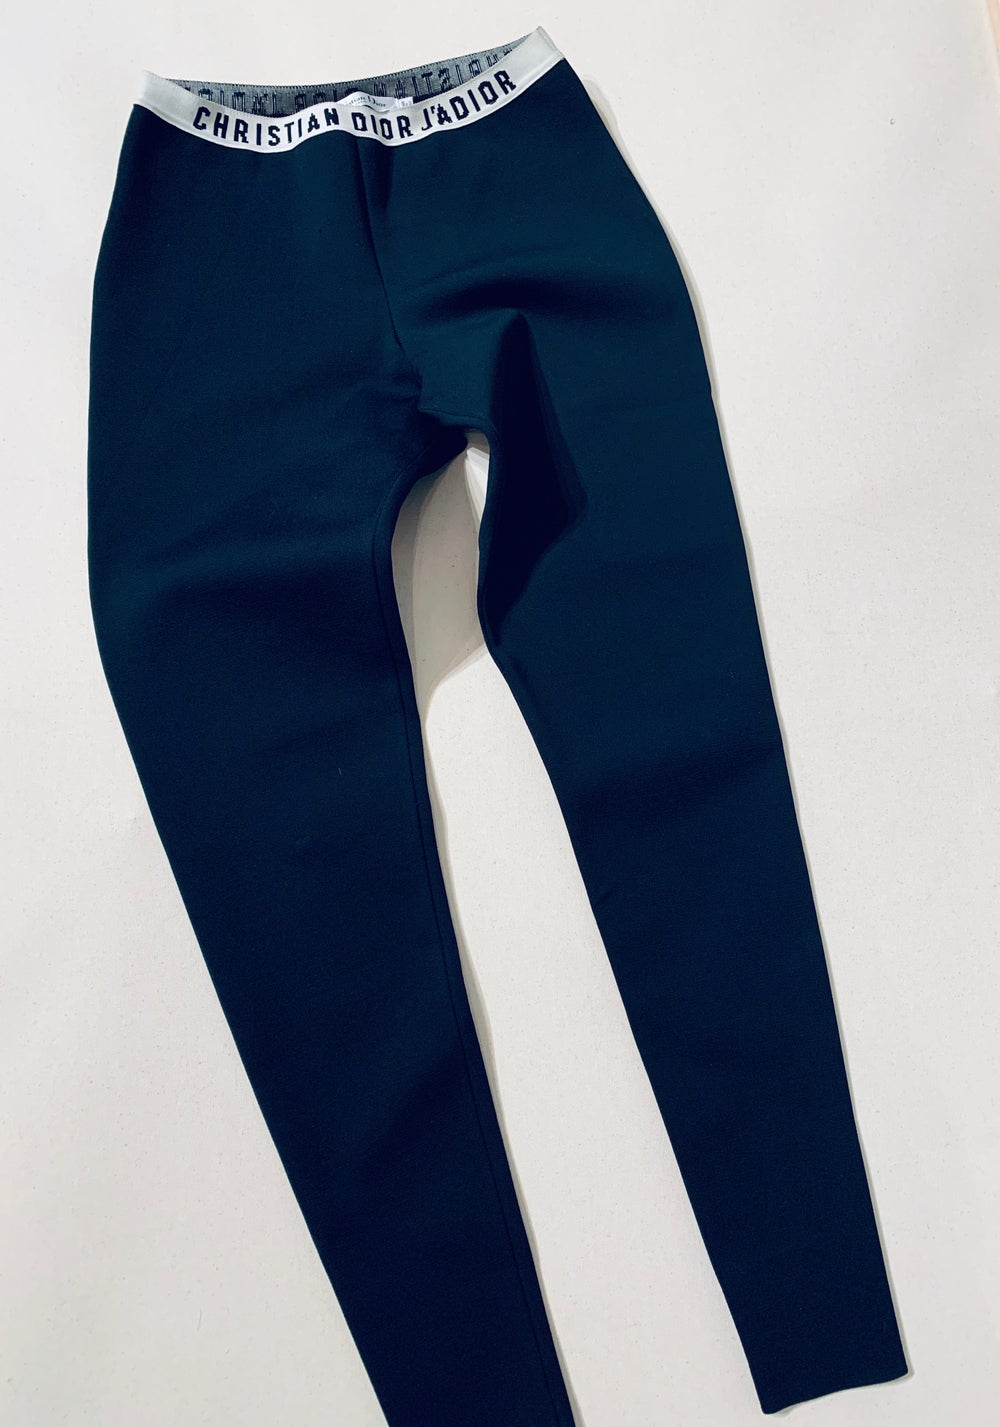 Image of DIOR MID RISE LEGGINGS